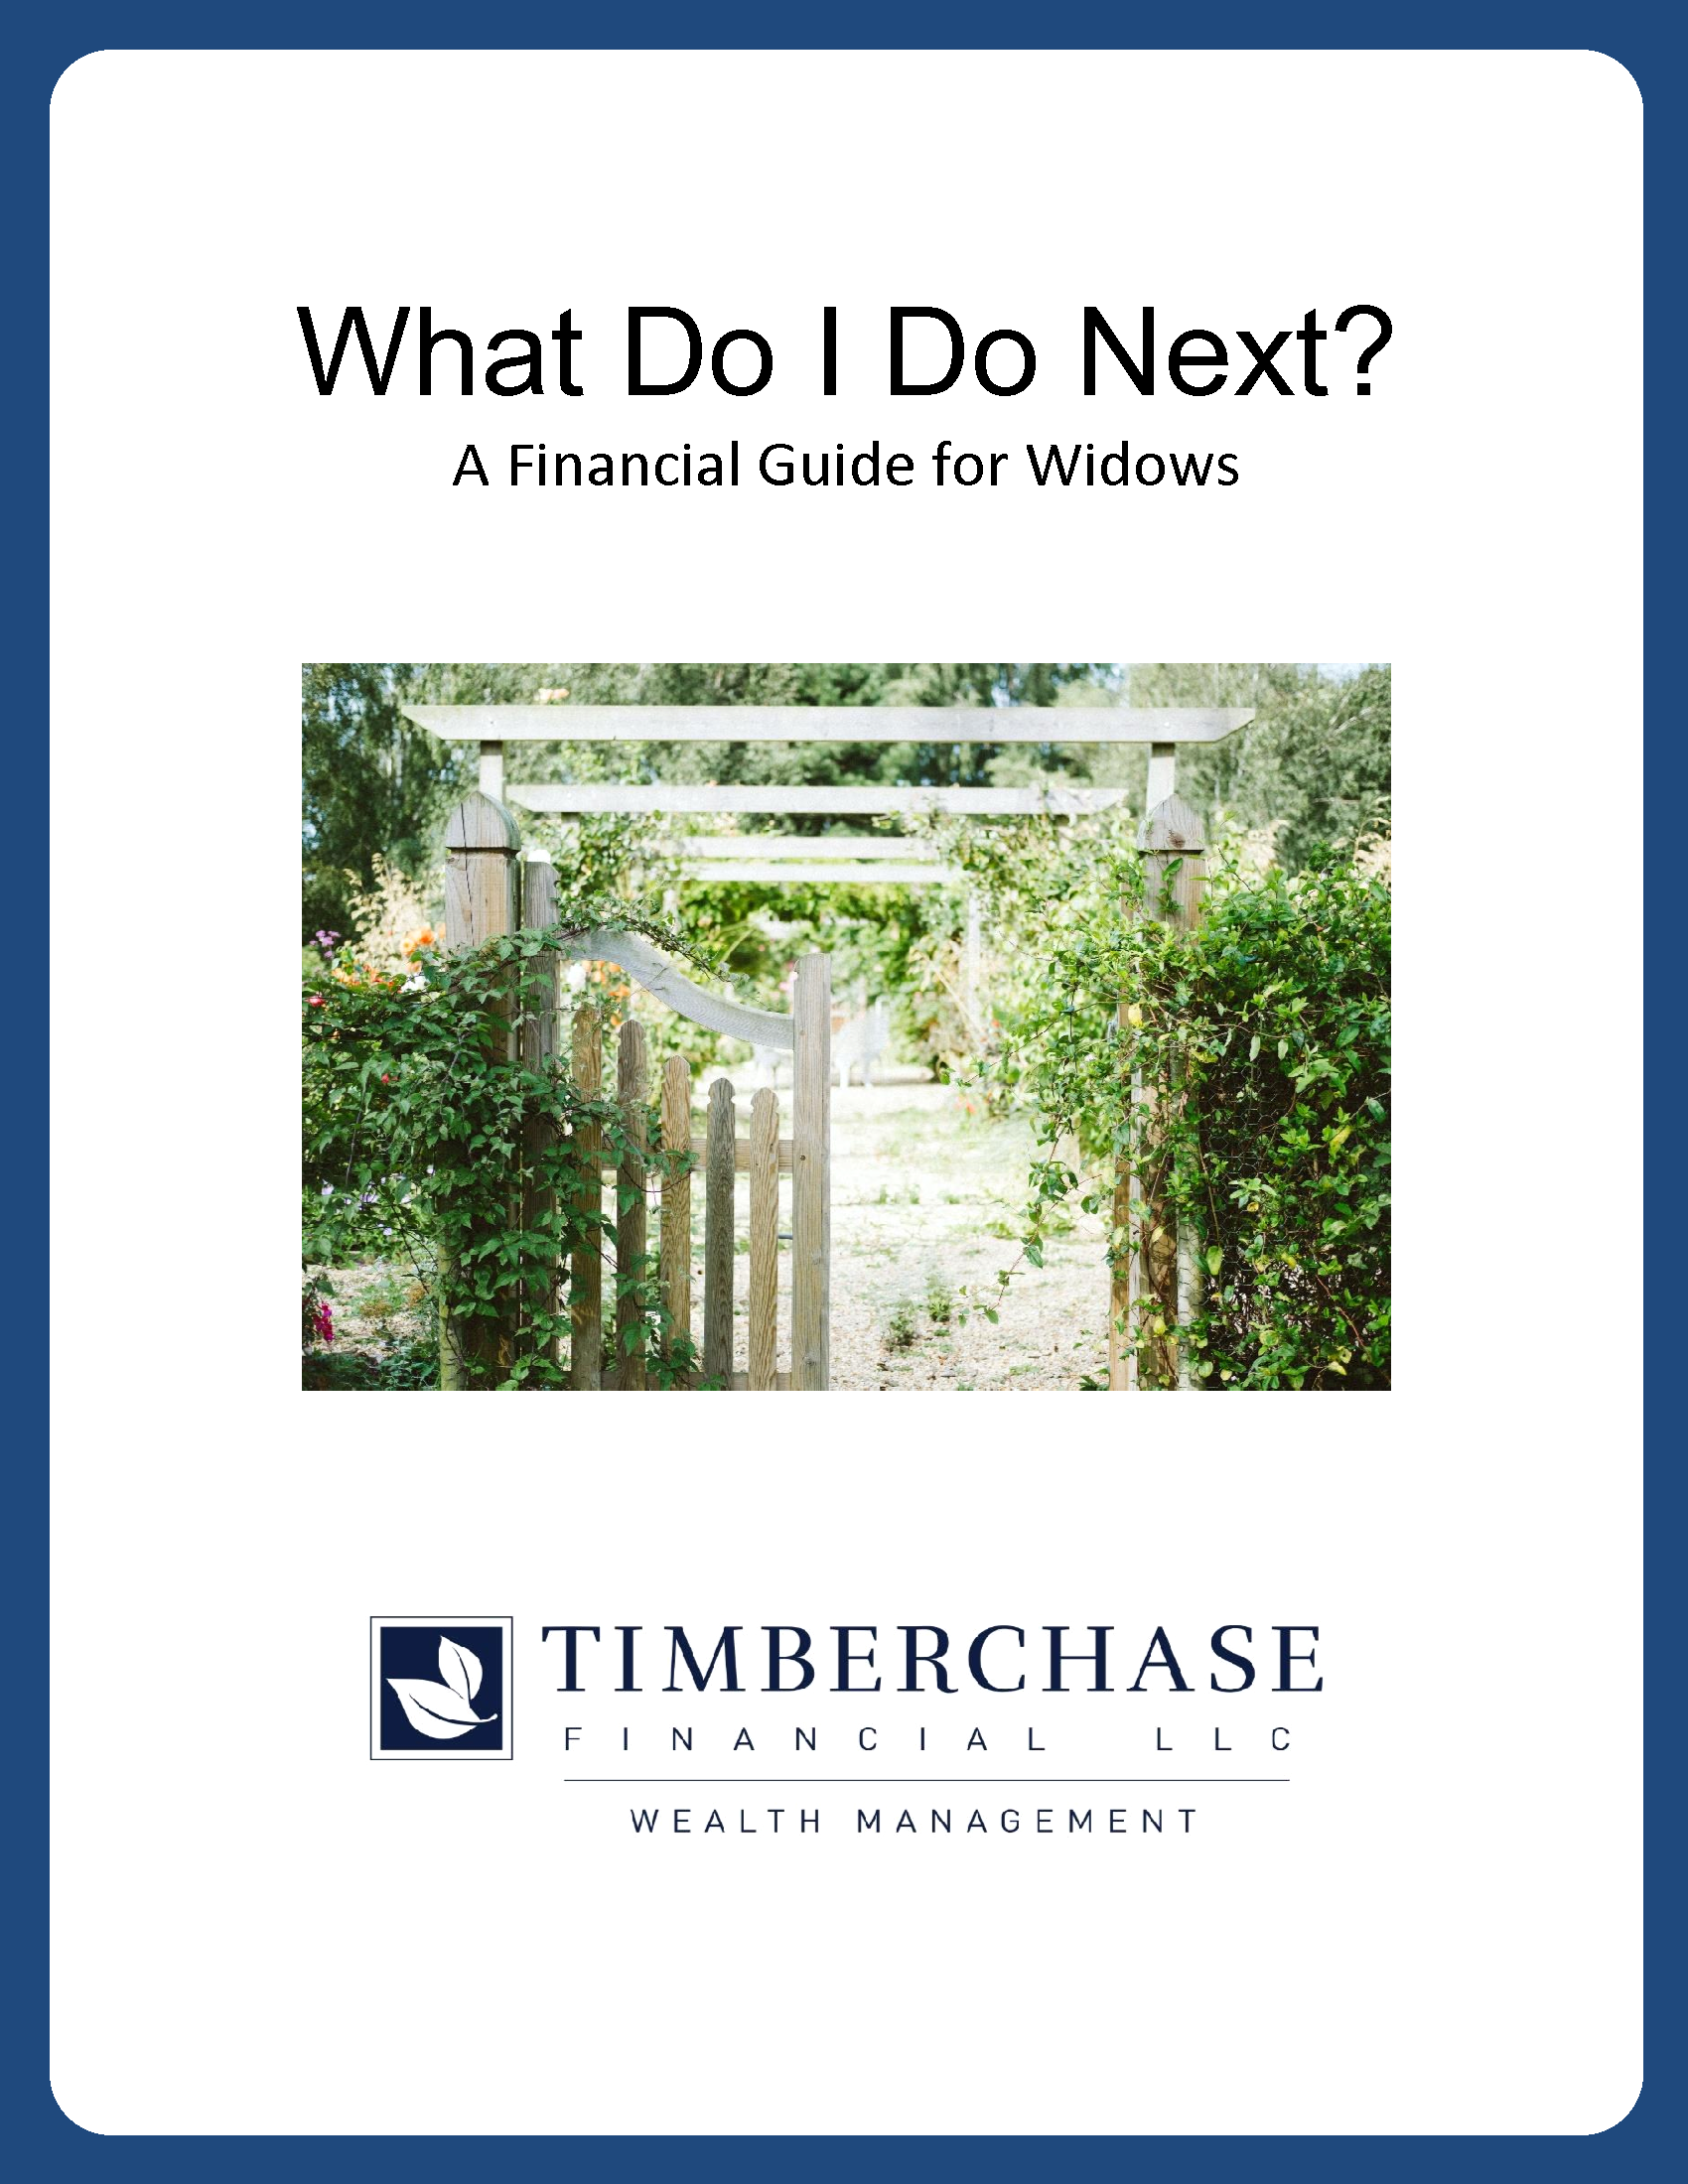 Click here to read our publication What Do I Do Next: A Financial Guide for Widows.